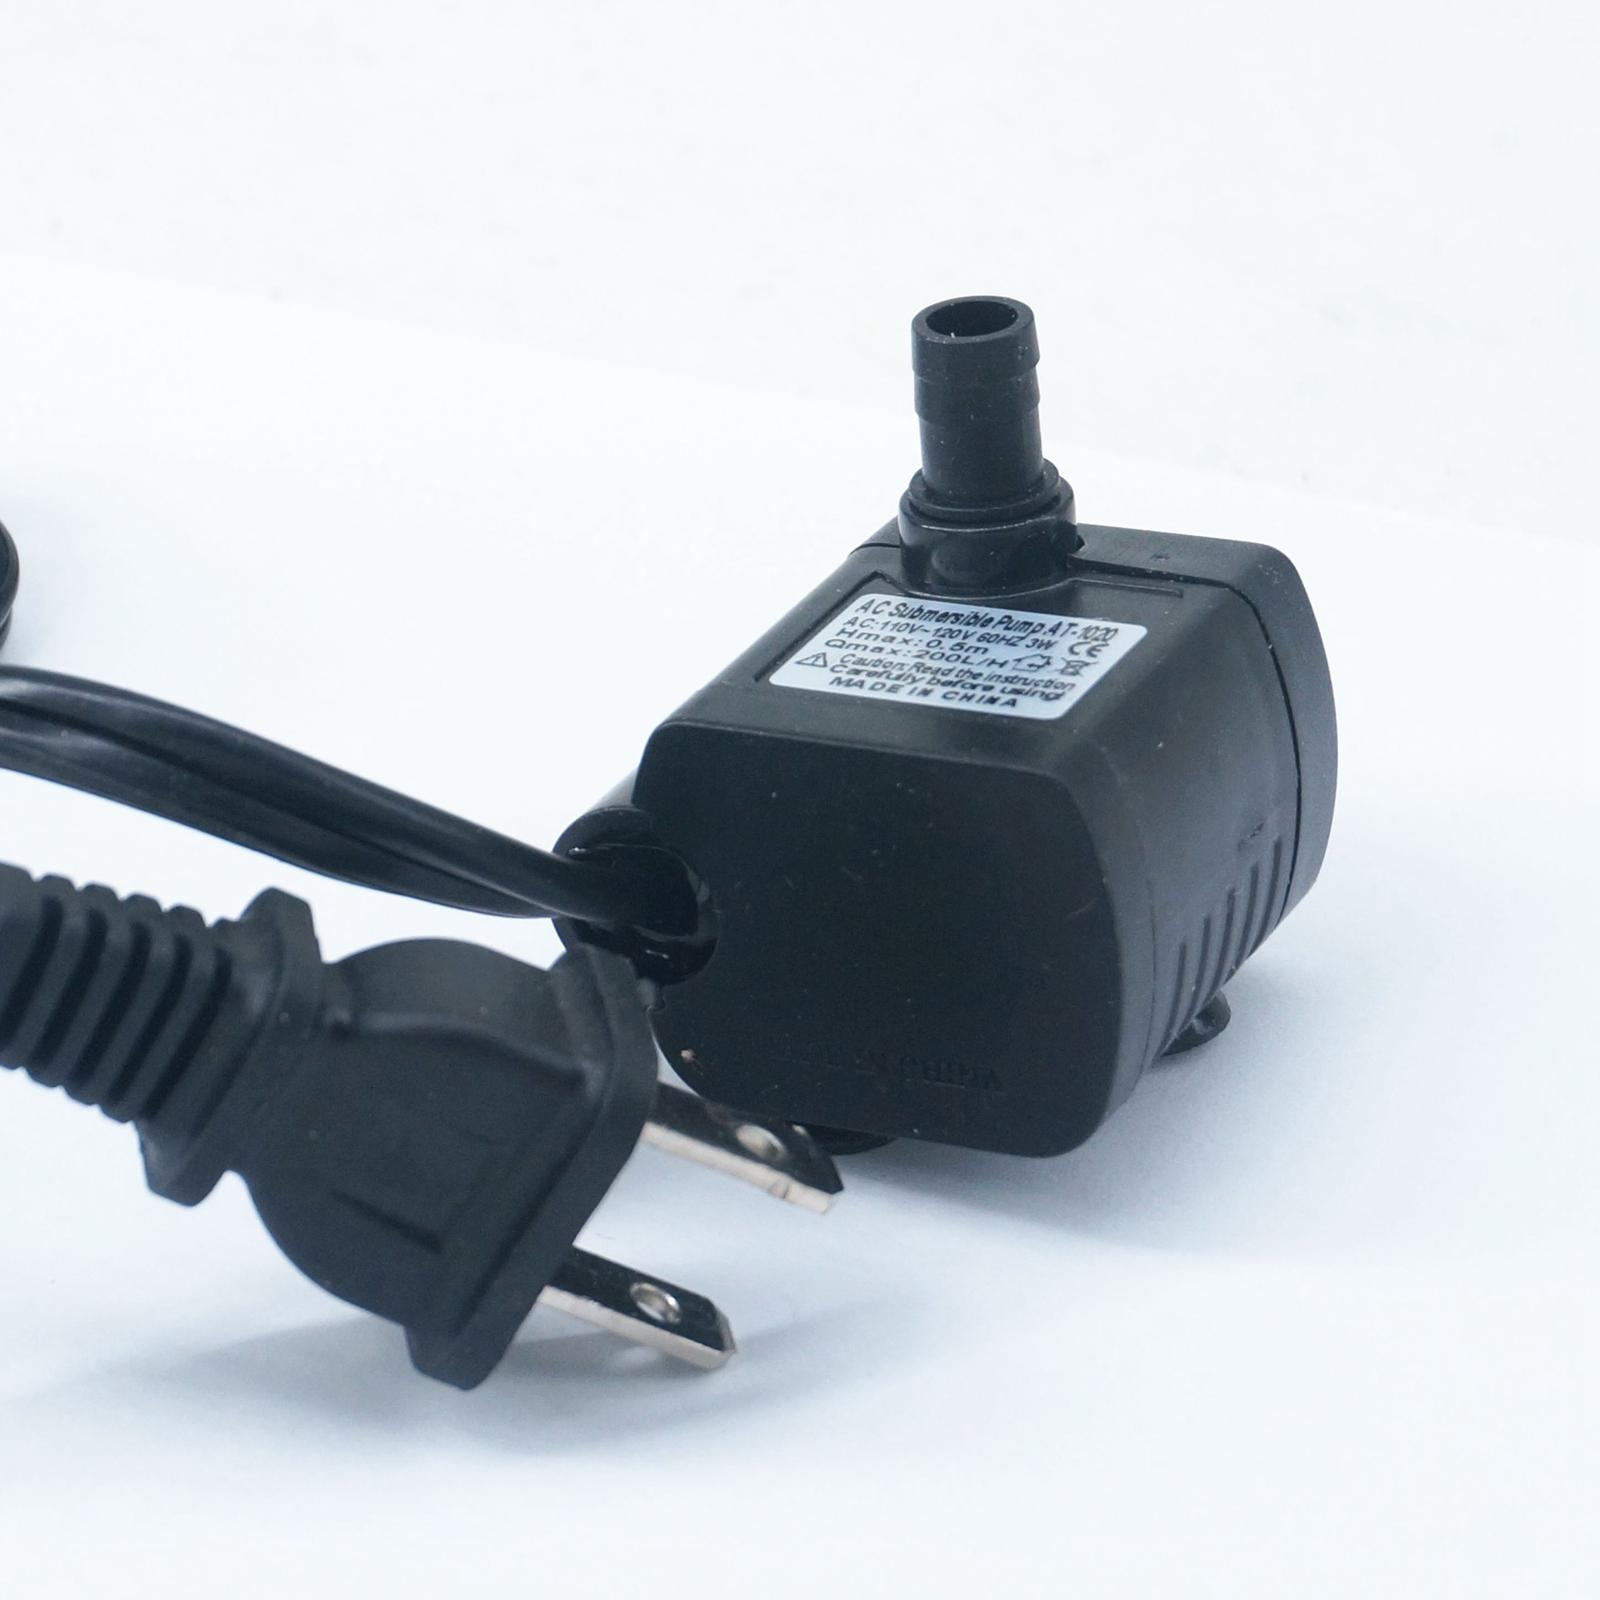 <font><b>110V</b></font> AC Electric Waterproof <font><b>Pump</b></font> Mini Submersible <font><b>Water</b></font> <font><b>Pump</b></font> brushless motor Aquarium fish tank no jam <font><b>Pump</b></font> image